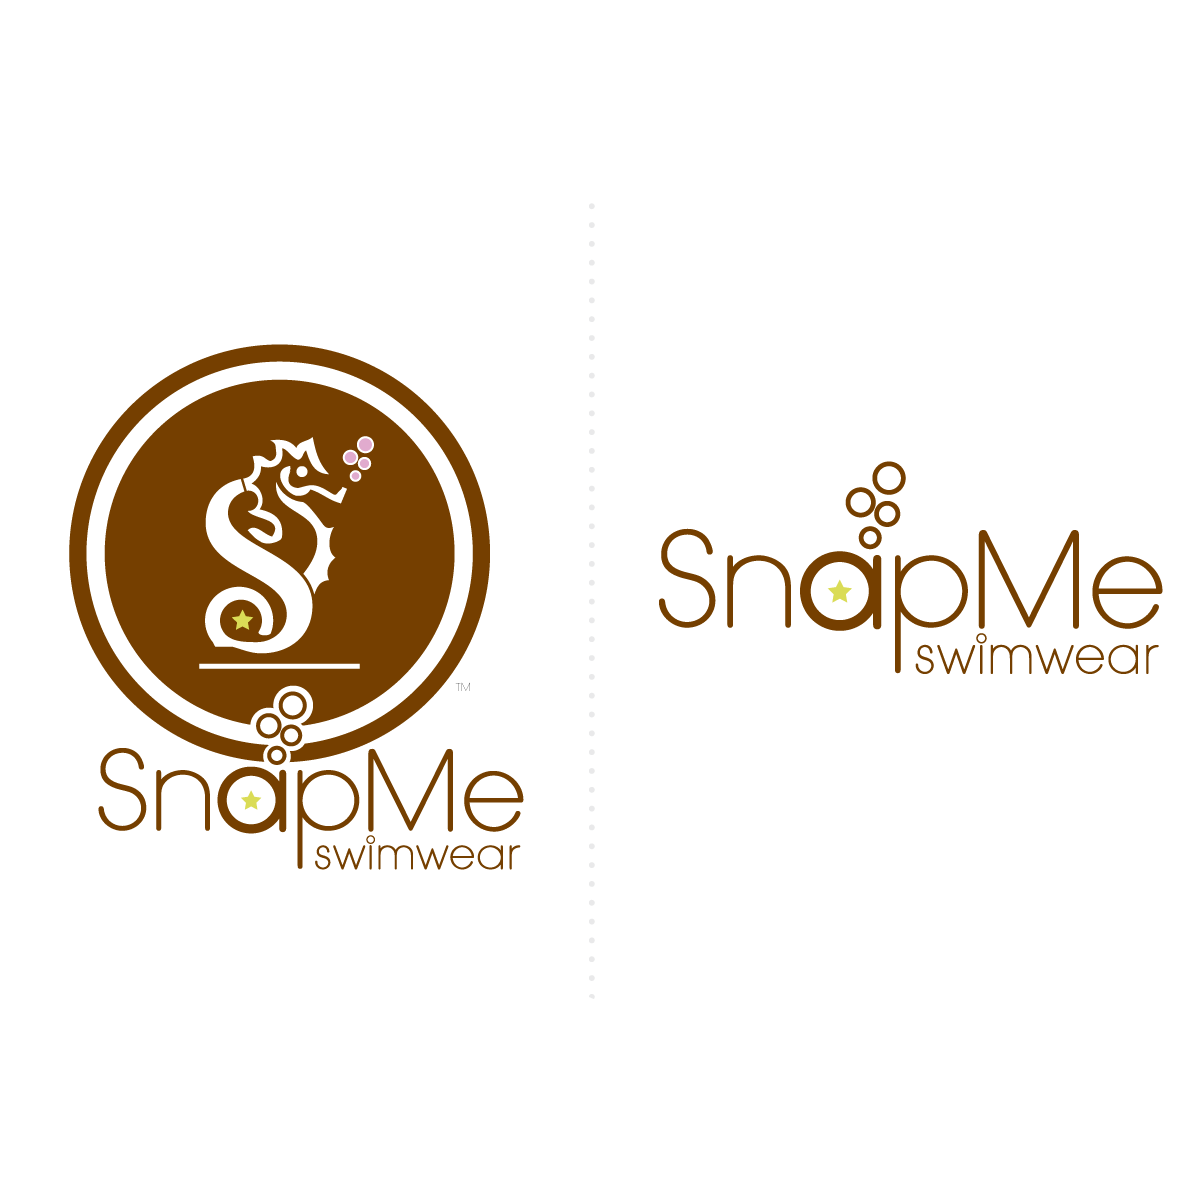 snapme swimwear logo wordmark